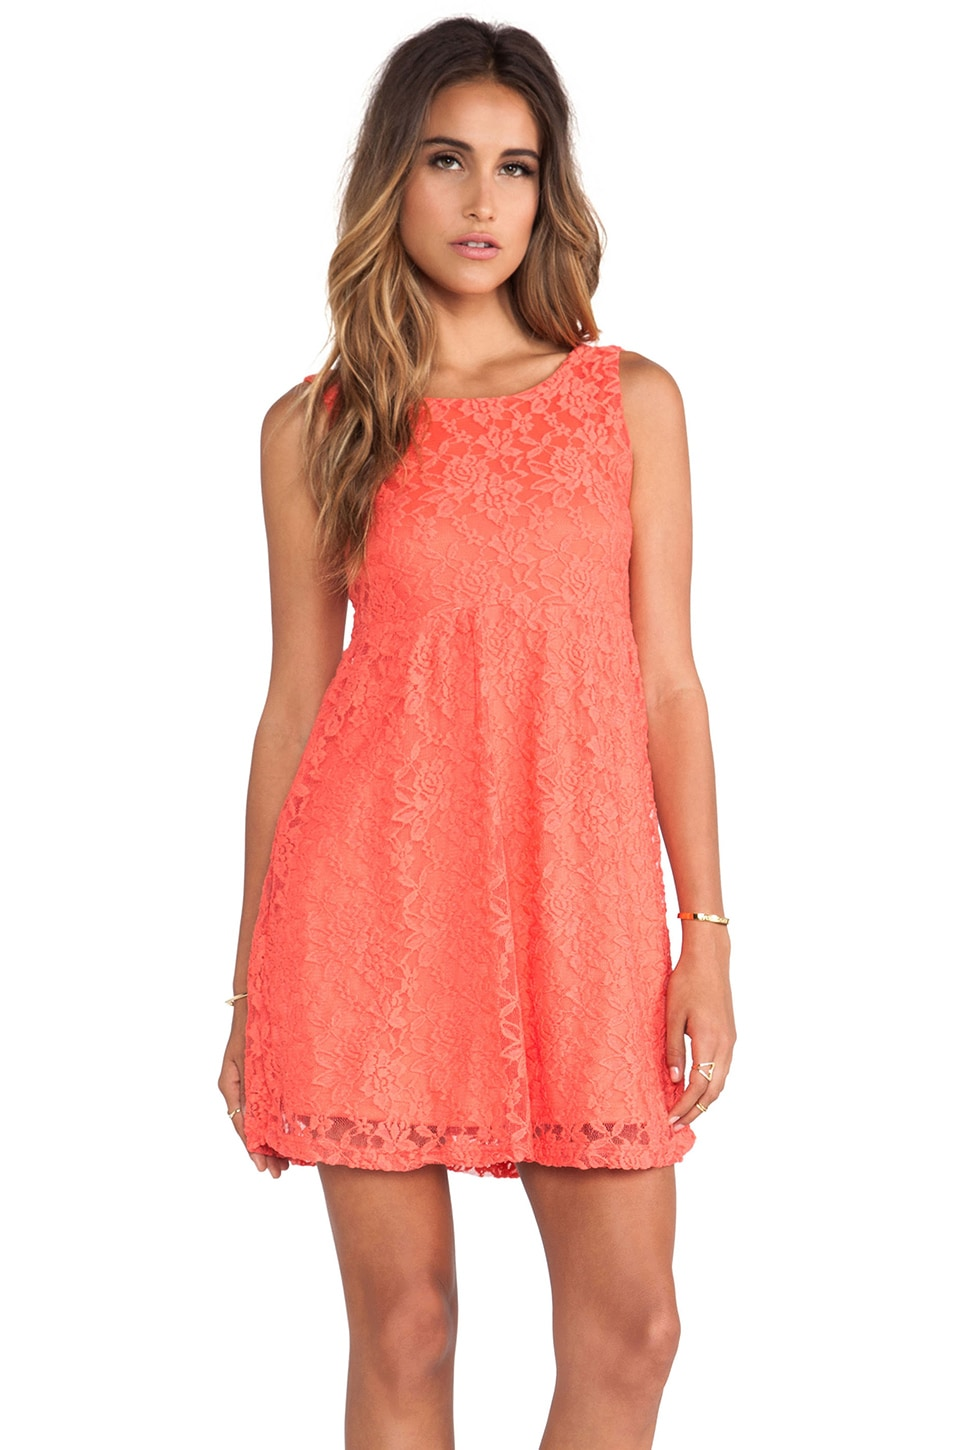 Surf Gypsy Coral Lace Scoop Back Dress in Coral